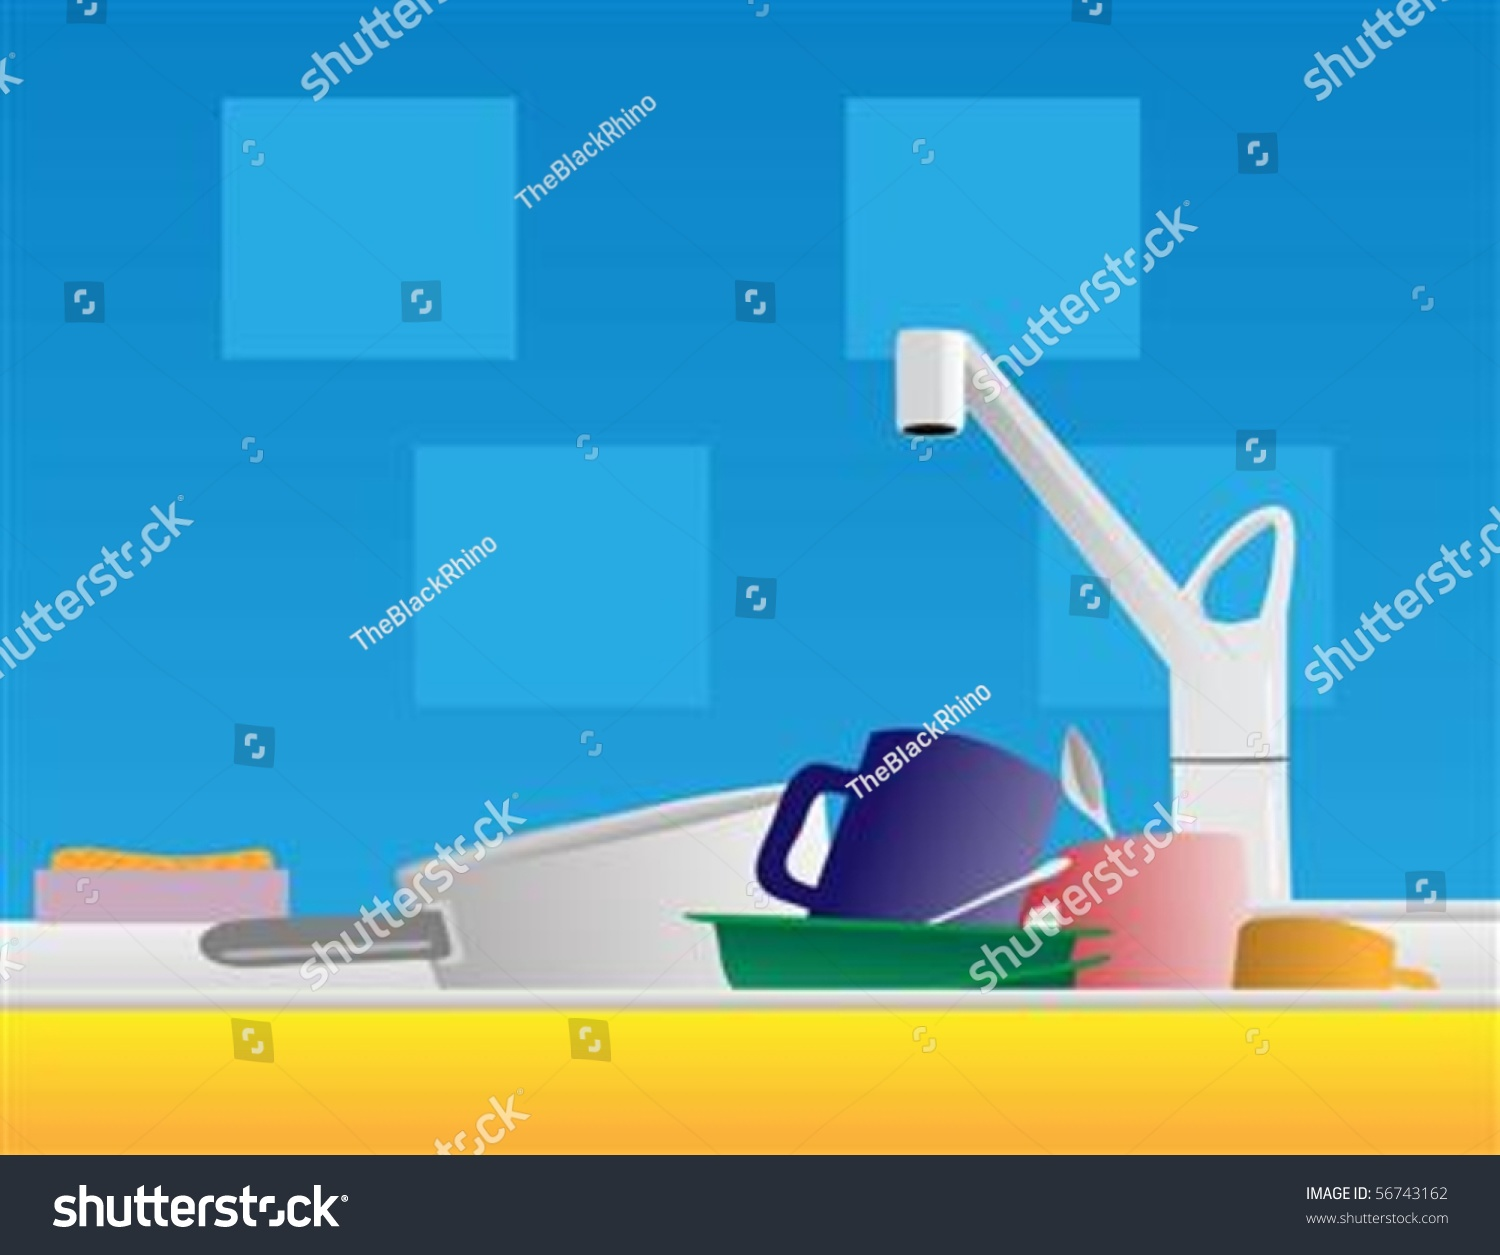 Messy Kitchen Sink Stock Photos: Pile Dirty Dishes Sit Kitchen Sink Stock Vector 56743162